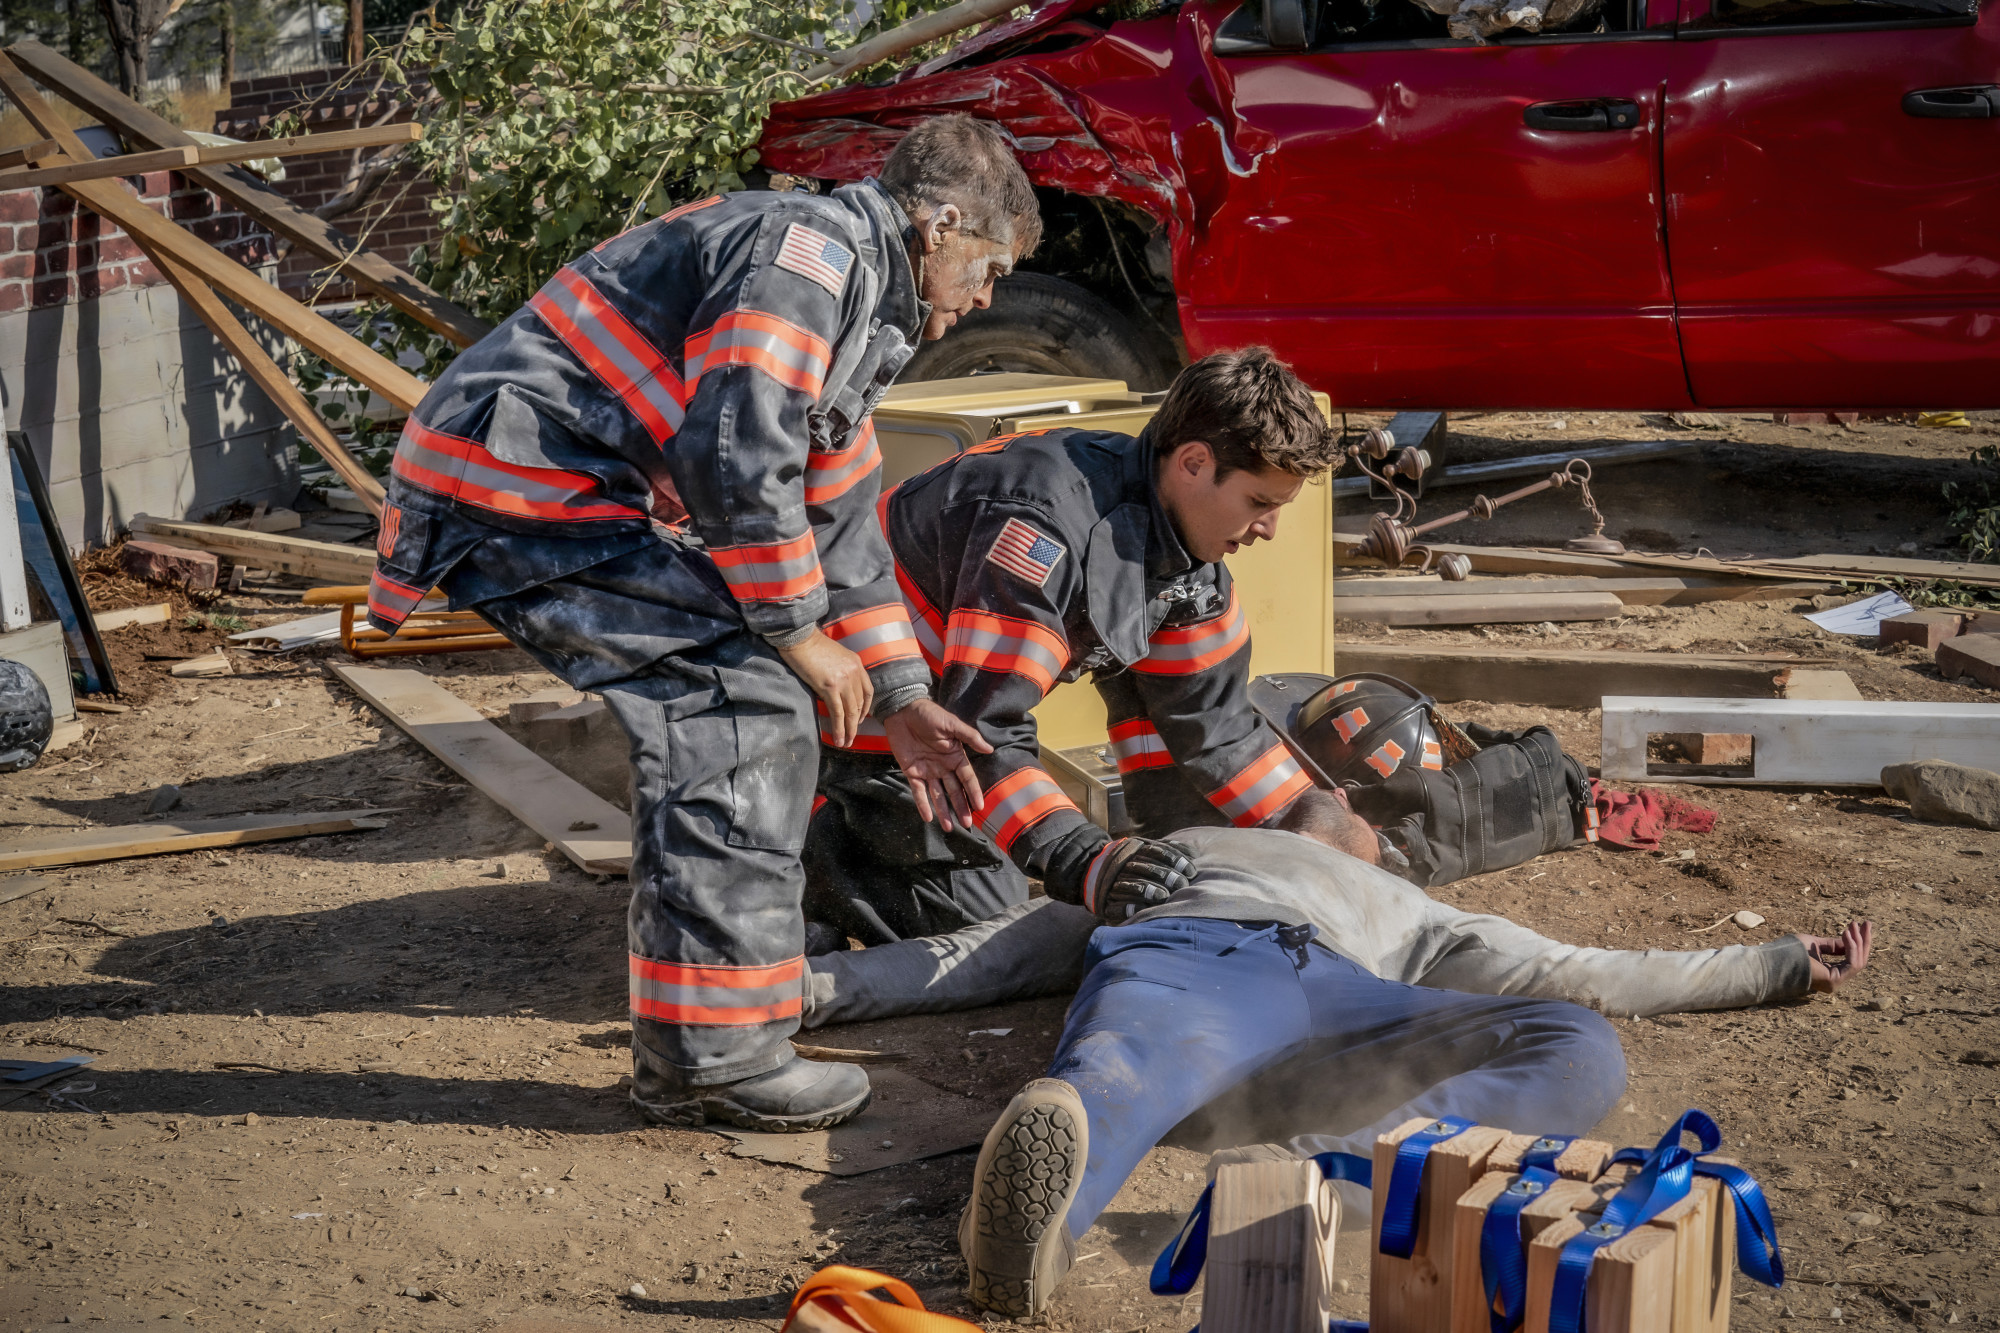 """9-1-1: LONE STAR: L-R: Rob Lowe and Ronen Rubenstein in the """"Act of God"""" episode of 9-1-1: LONE STAR airing Monday, Feb. 3 (8:00-9:01 PM ET/PT) on FOX. ©2020 Fox Media LLC. CR: Jack Zeman/FOX."""